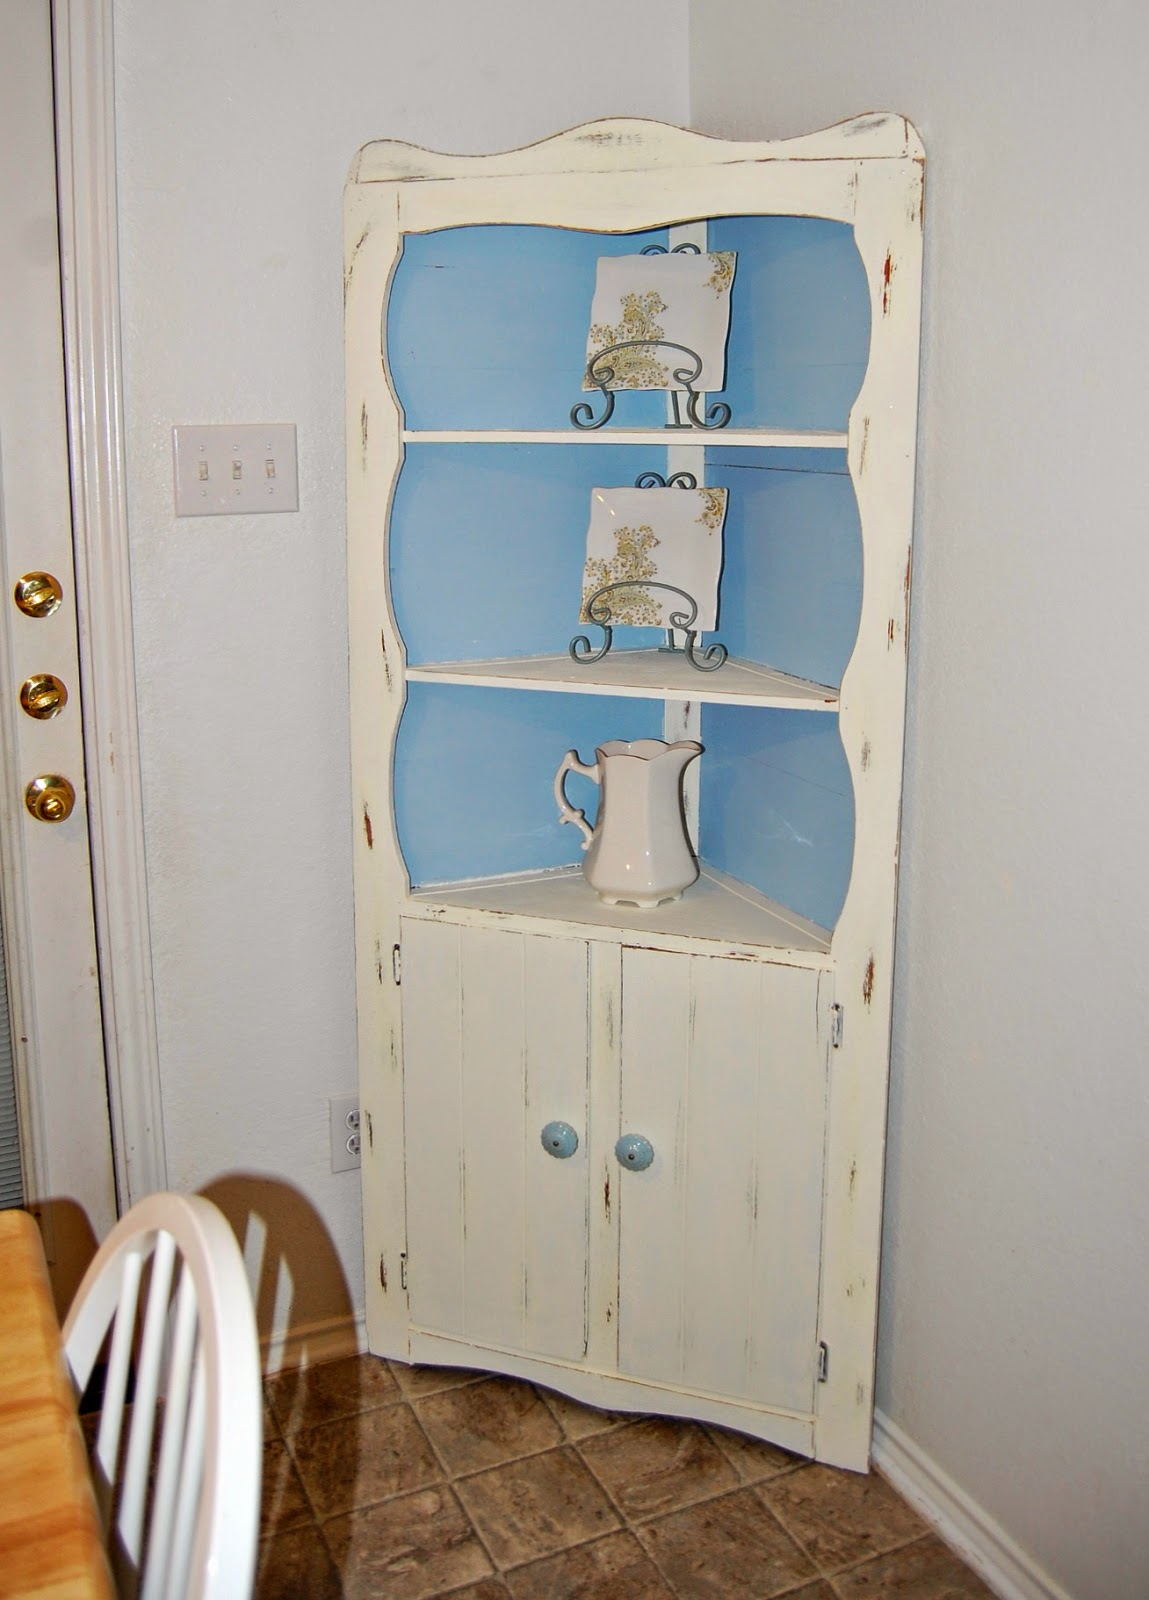 Ordinaire Heavily Shellacked Corner Cabinet Turned Shabby Chic Using Americana Chalk  Paints In Whisper U0026 Serene For The Interior Color. Distressed With New  Hardware ...